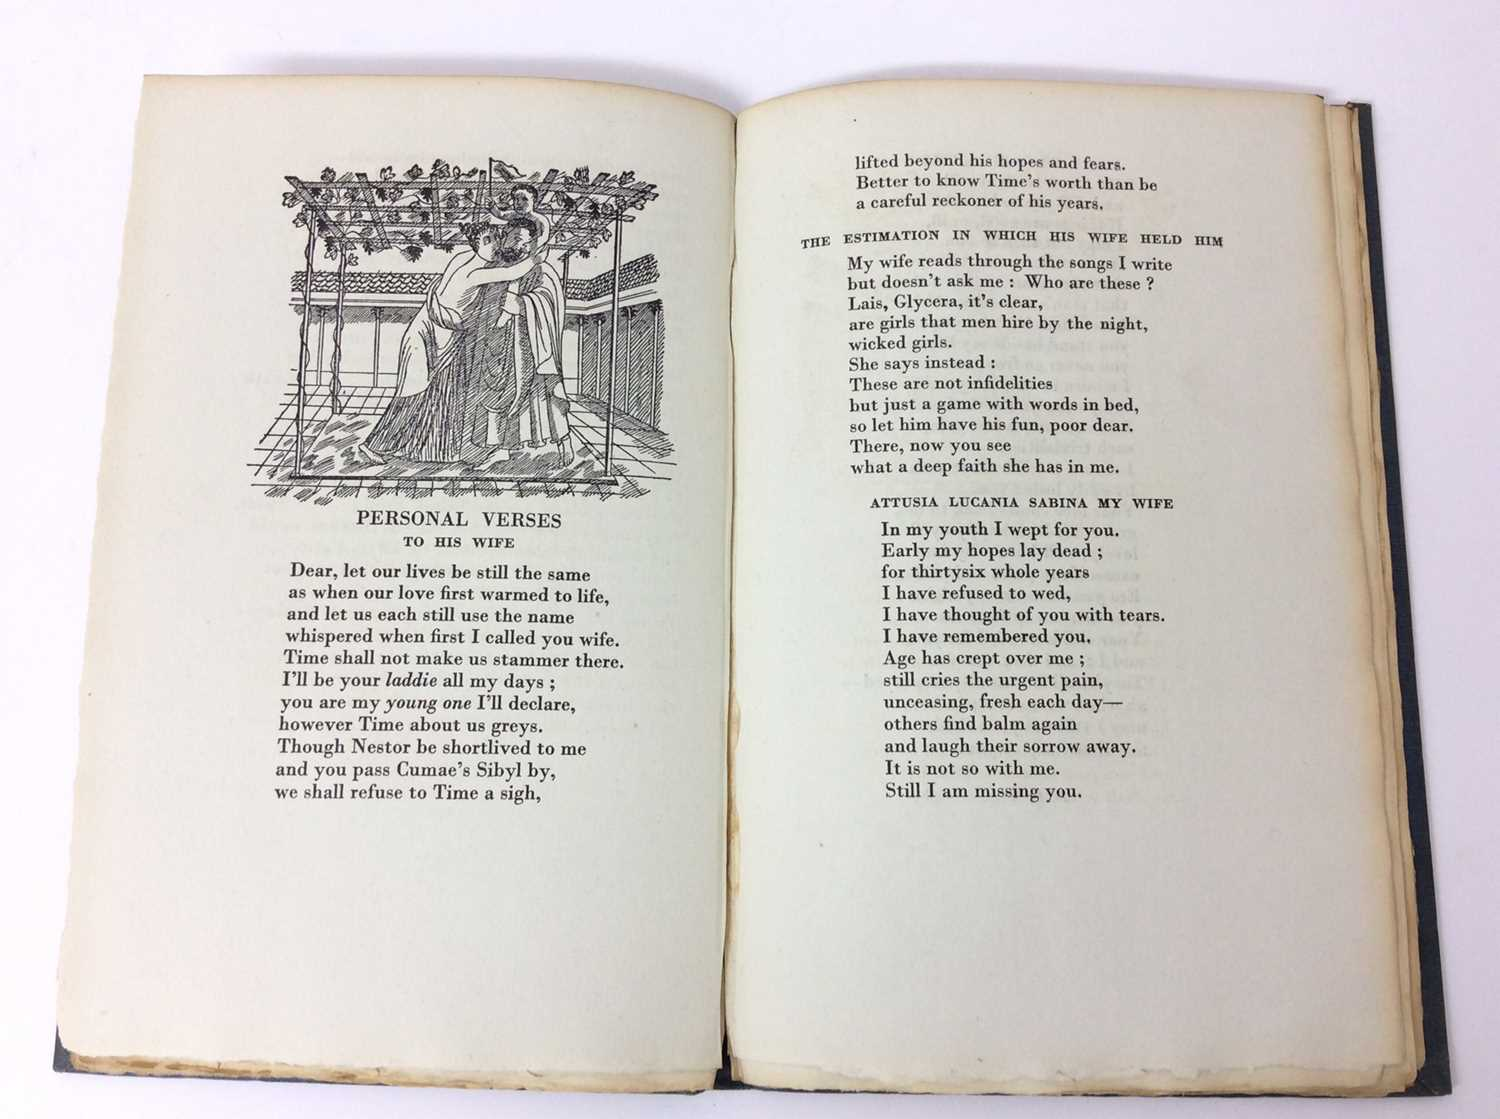 Patchwork Quilt. Poems by Decimus Magnus Ausonius, with illustrations by Edward Bawden, Franfrolico - Image 5 of 7